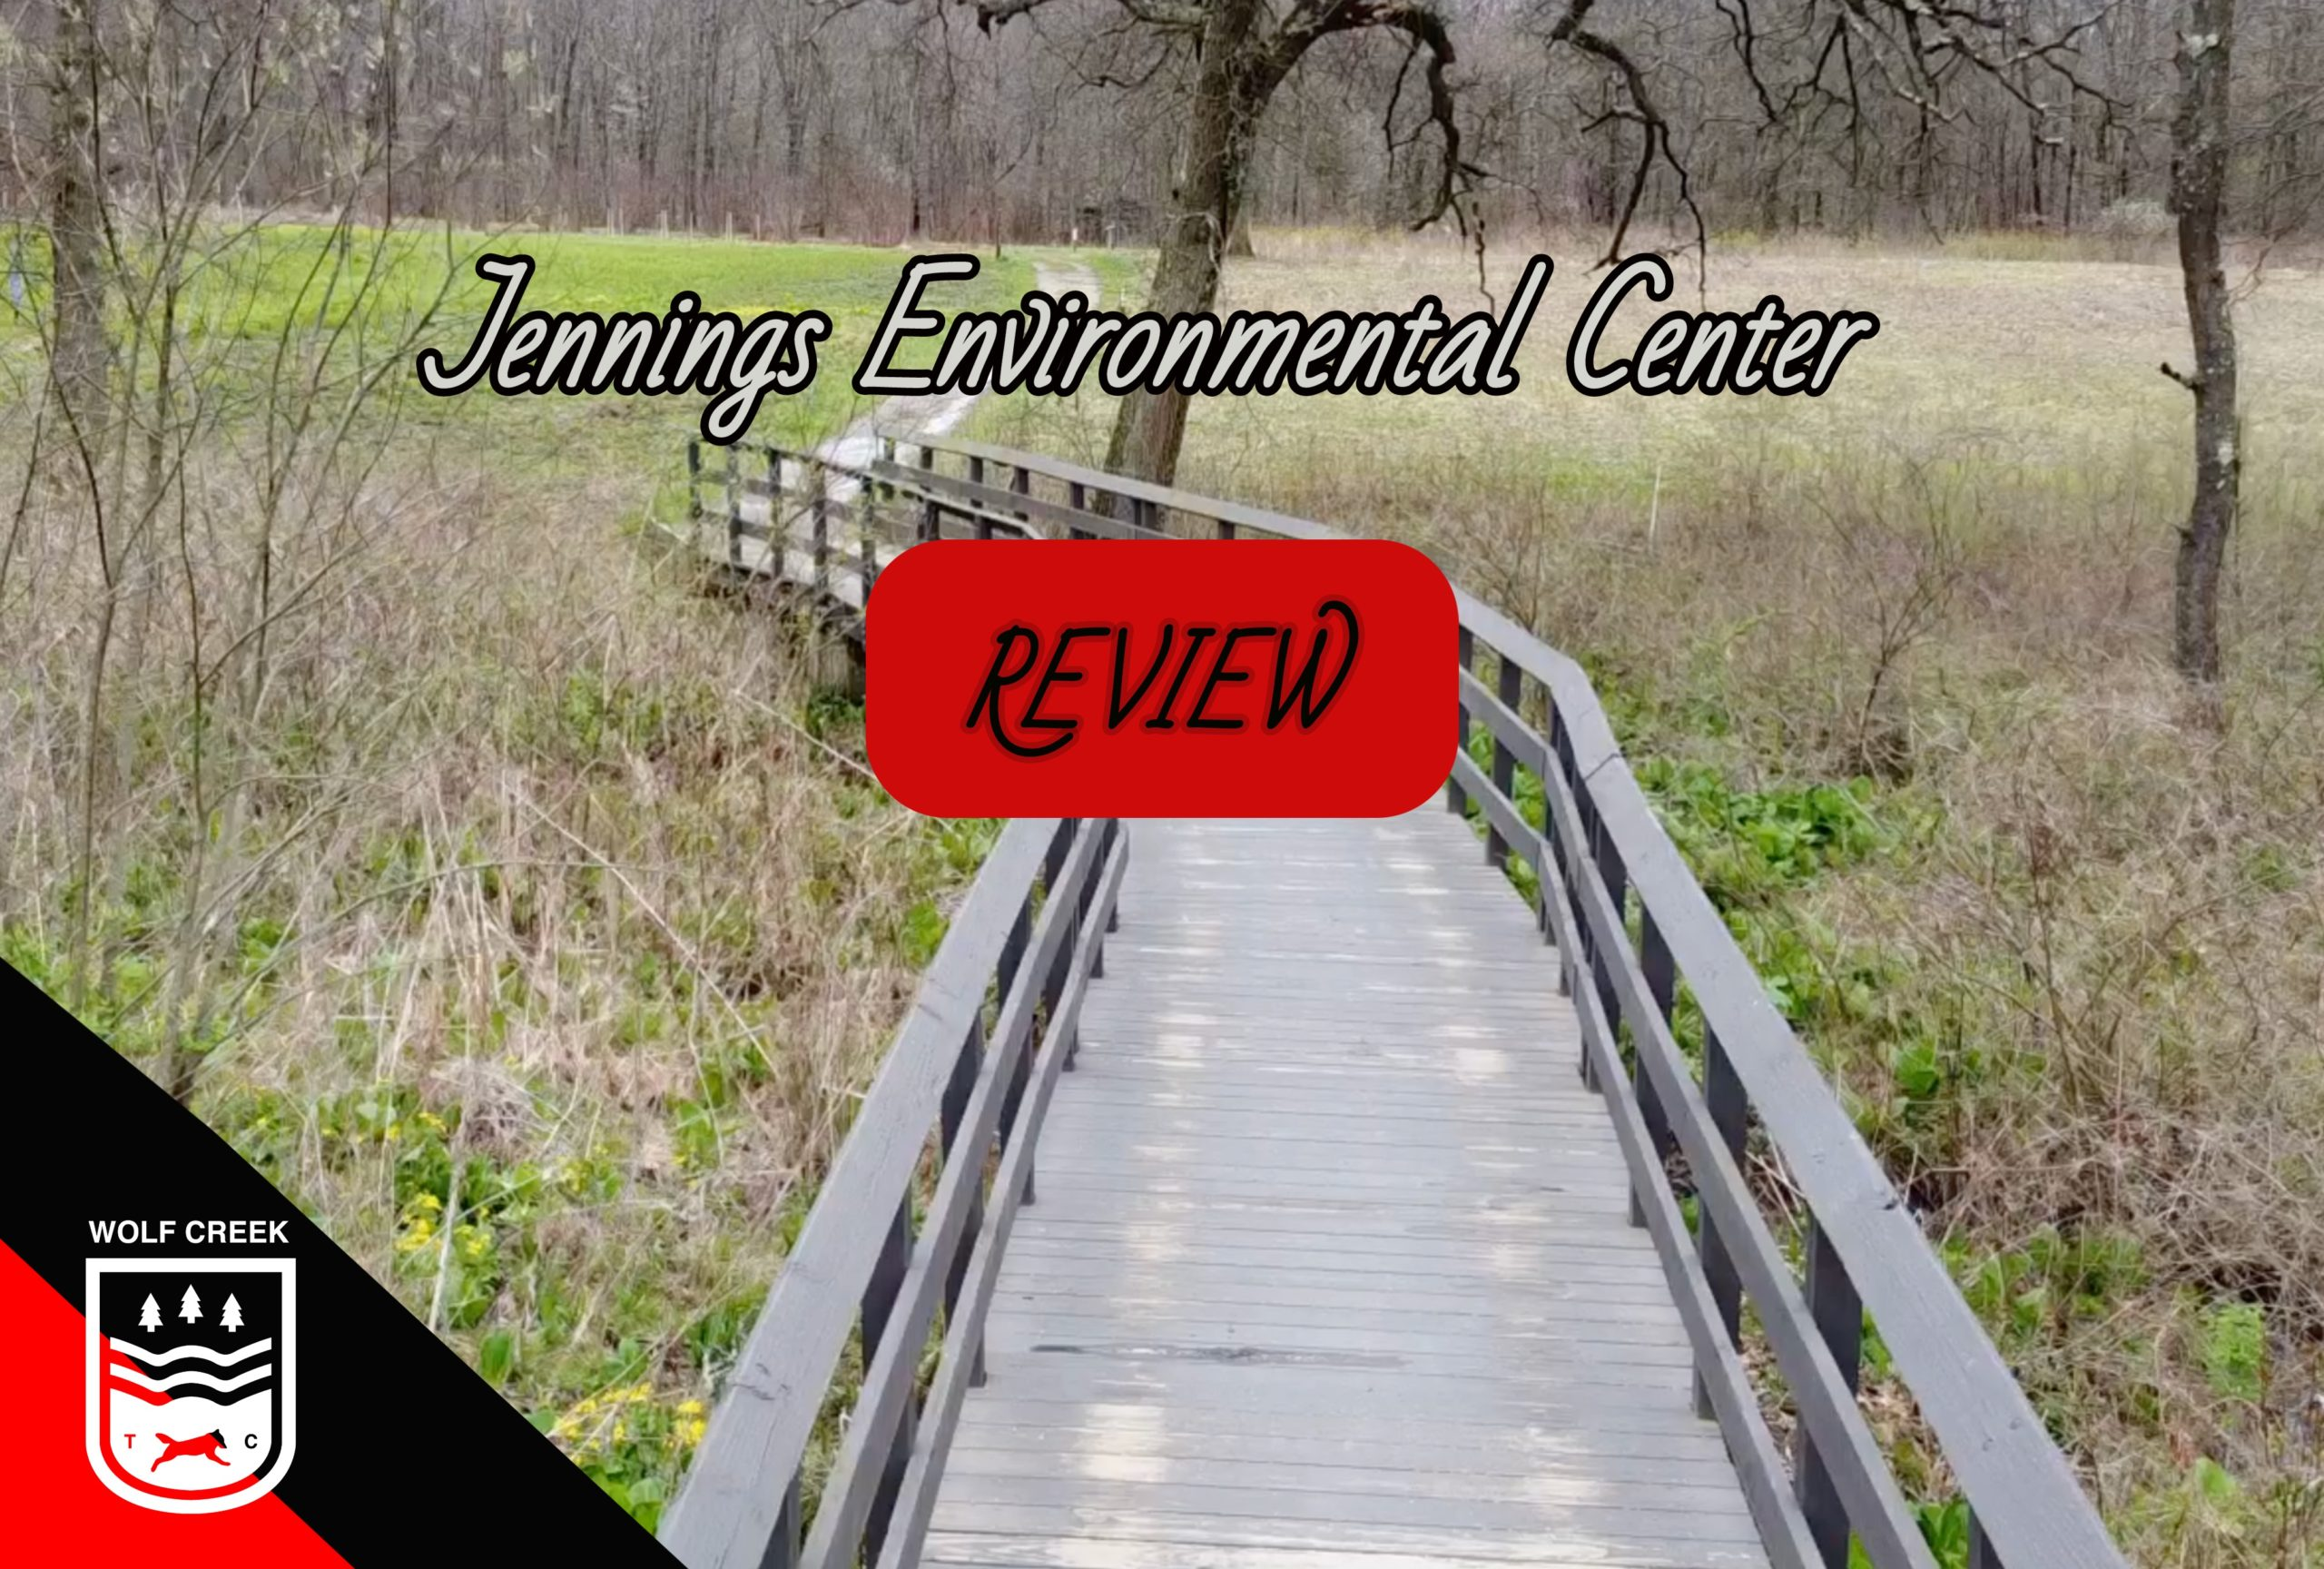 Best Places to Run in Western PA: Jennings Environmental Center